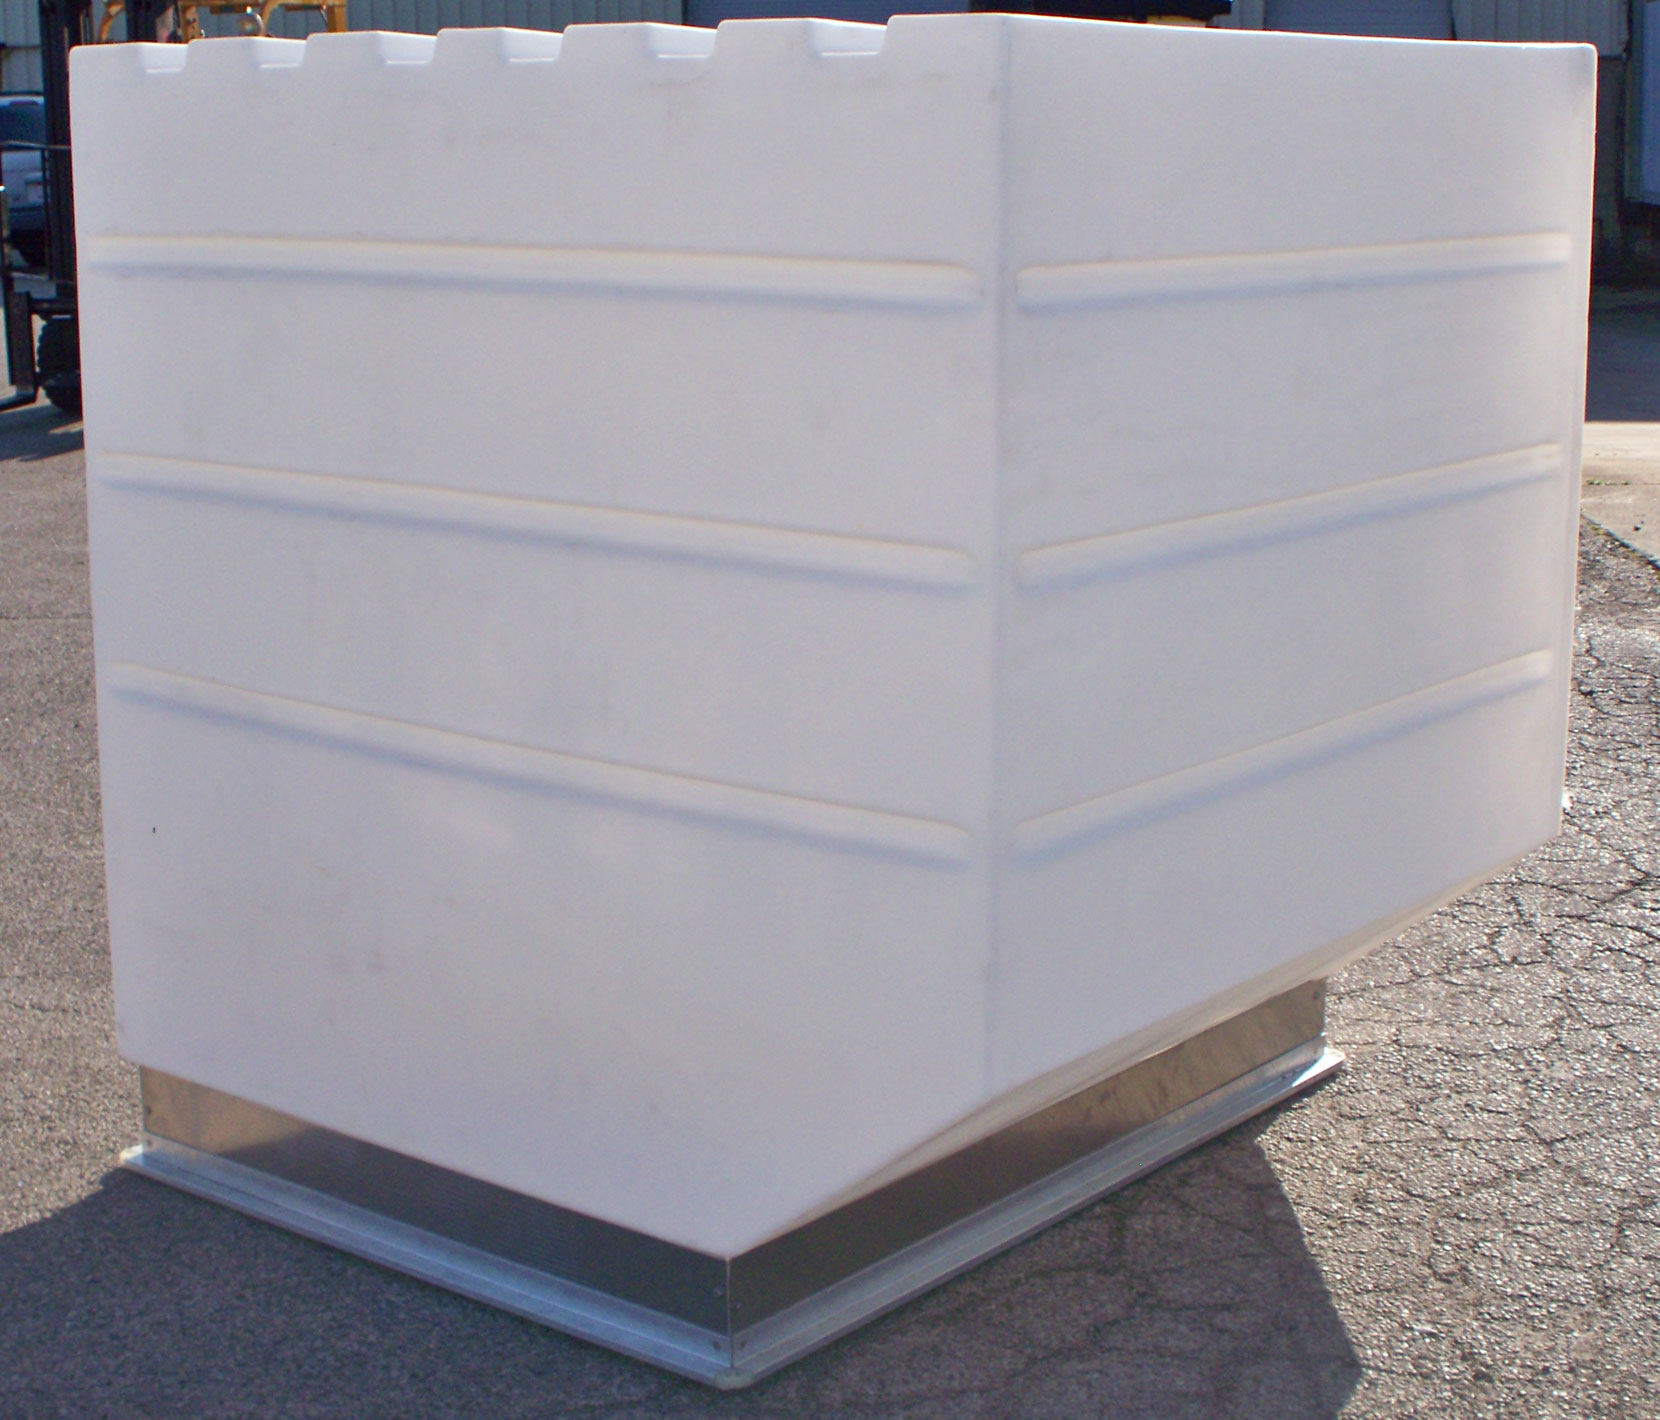 Granger Aerospace ULD 2, LD 2, Granger Aerospace Products, AIr Cargo Container